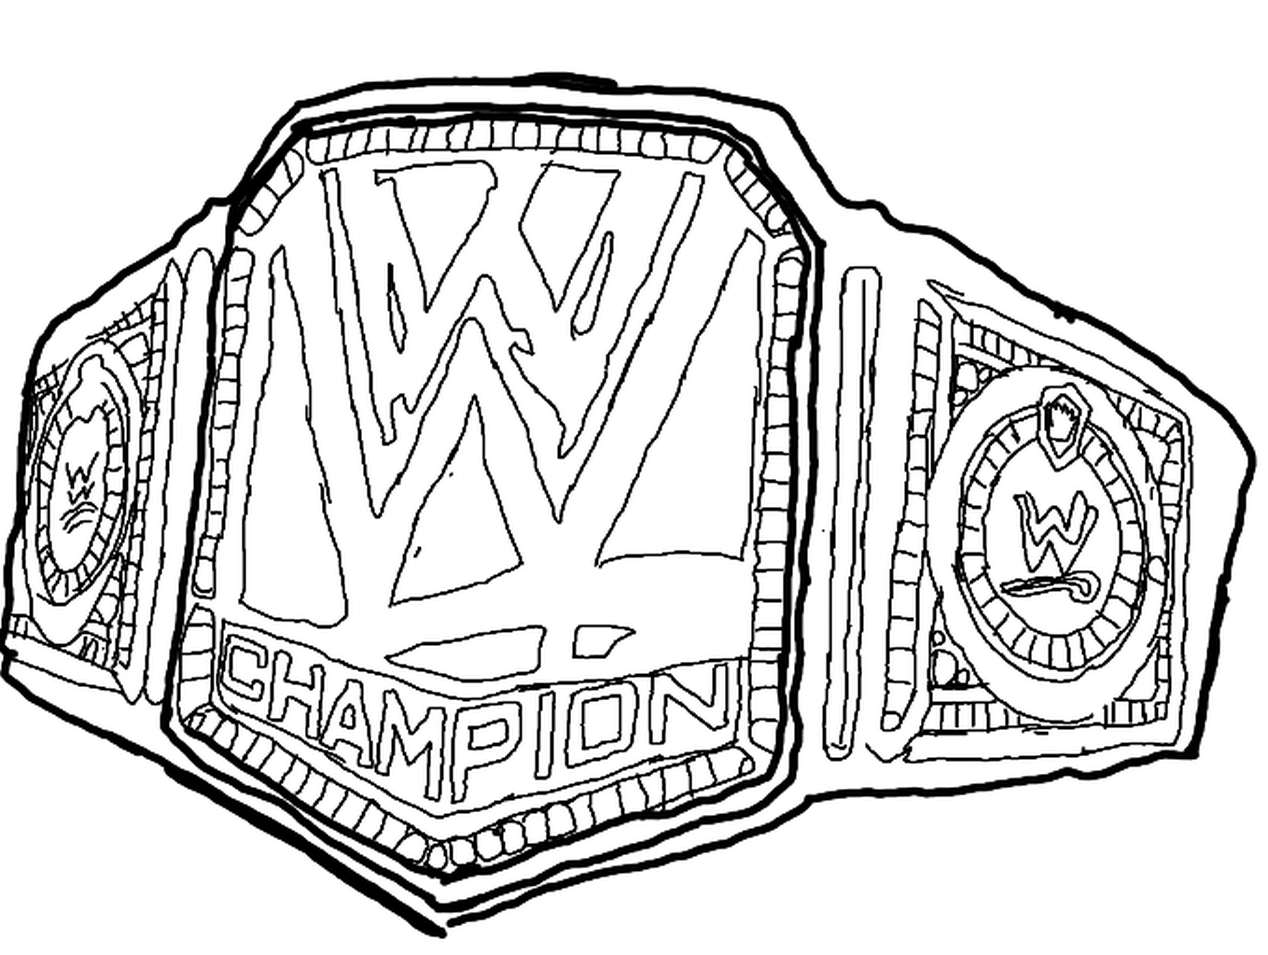 78 Best wwe images | Wwe, Wwe coloring pages, Coloring pages | 955x1268